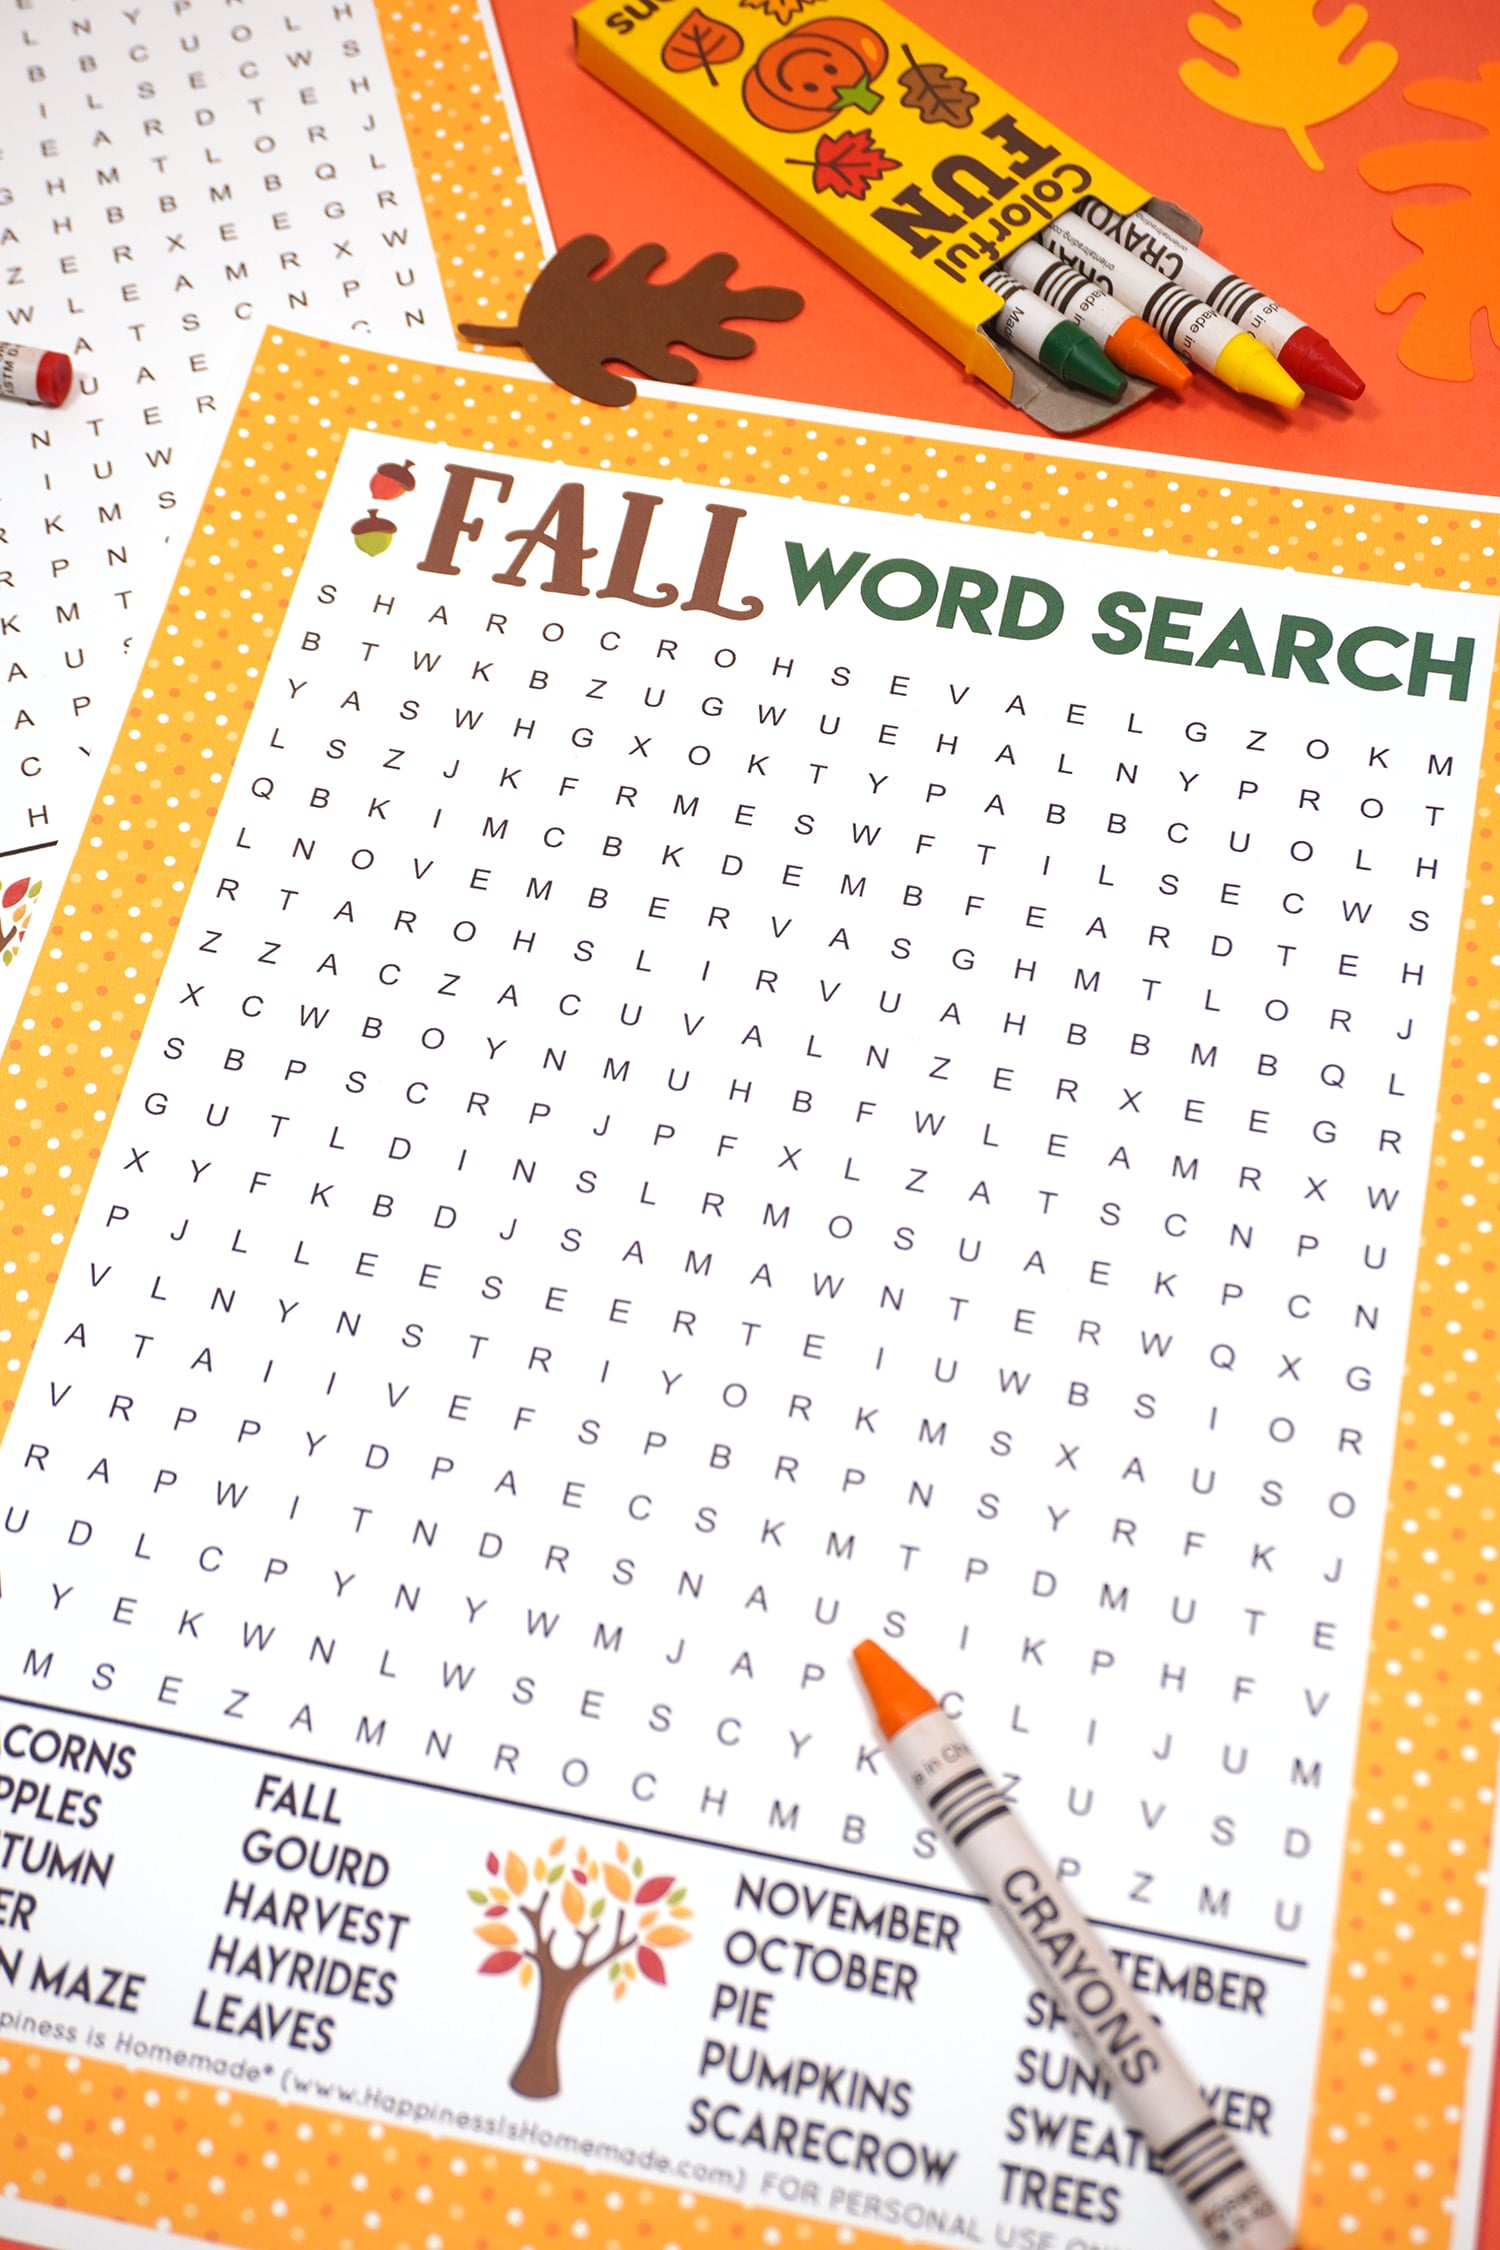 Fall Word Search Printable on dark orange background with orange crayon surrounded by paper leaves